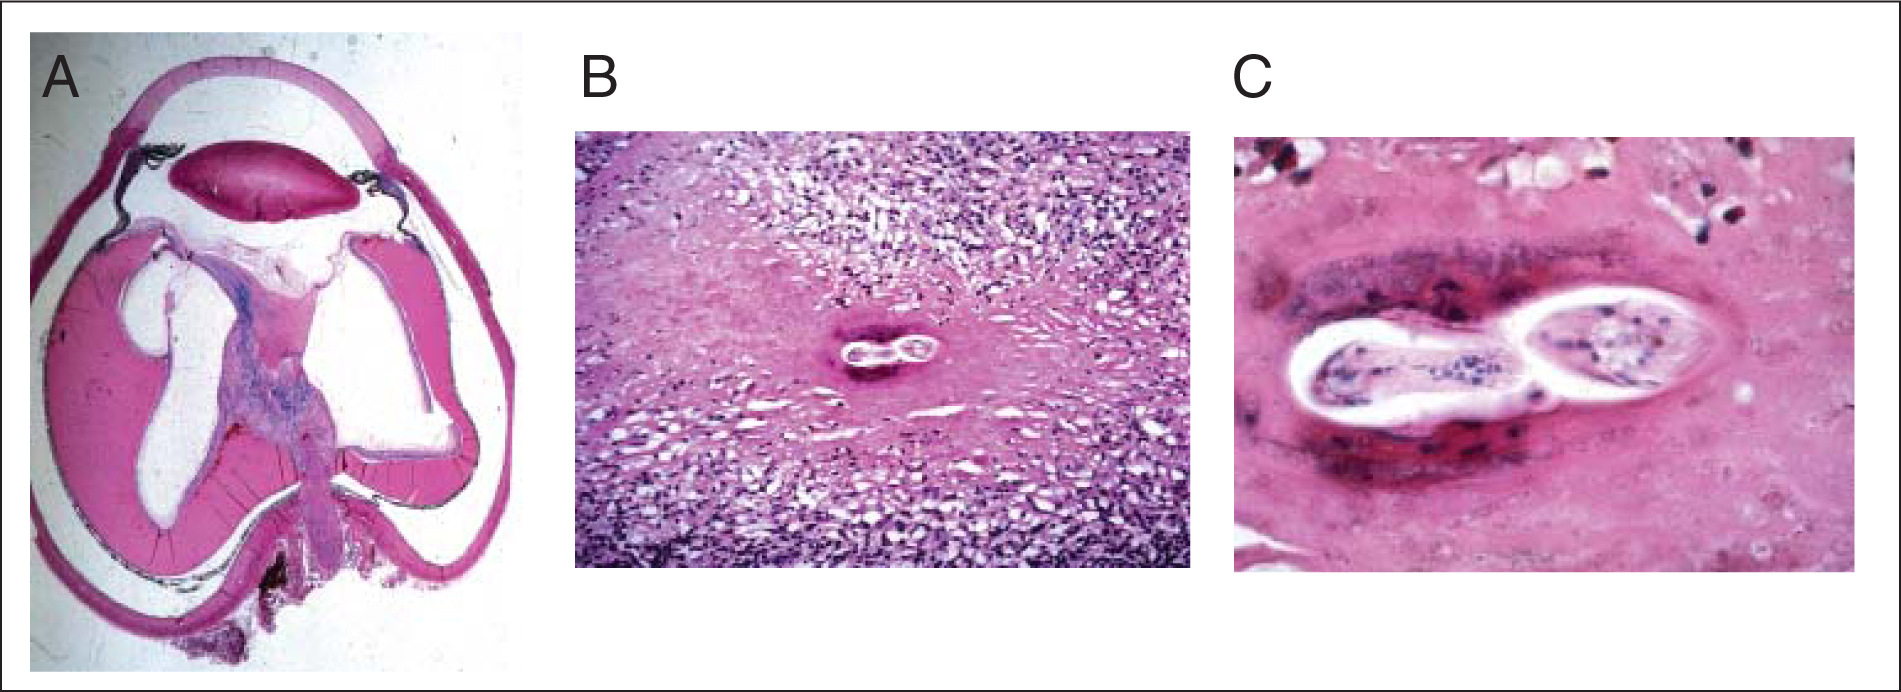 (A) Retrolental intravitreal fibroinflammatory mass with retinal detachment. (B) Intravitreal mass composed of fibroinflammatory cells with plasma cells, eosinophils, and fibrous tissue surrounding a nematode of Toxocara canis. (C) Partially well preserved nematode of T. canis (Photographs courtesy of Dario Savino-Zari, MD).